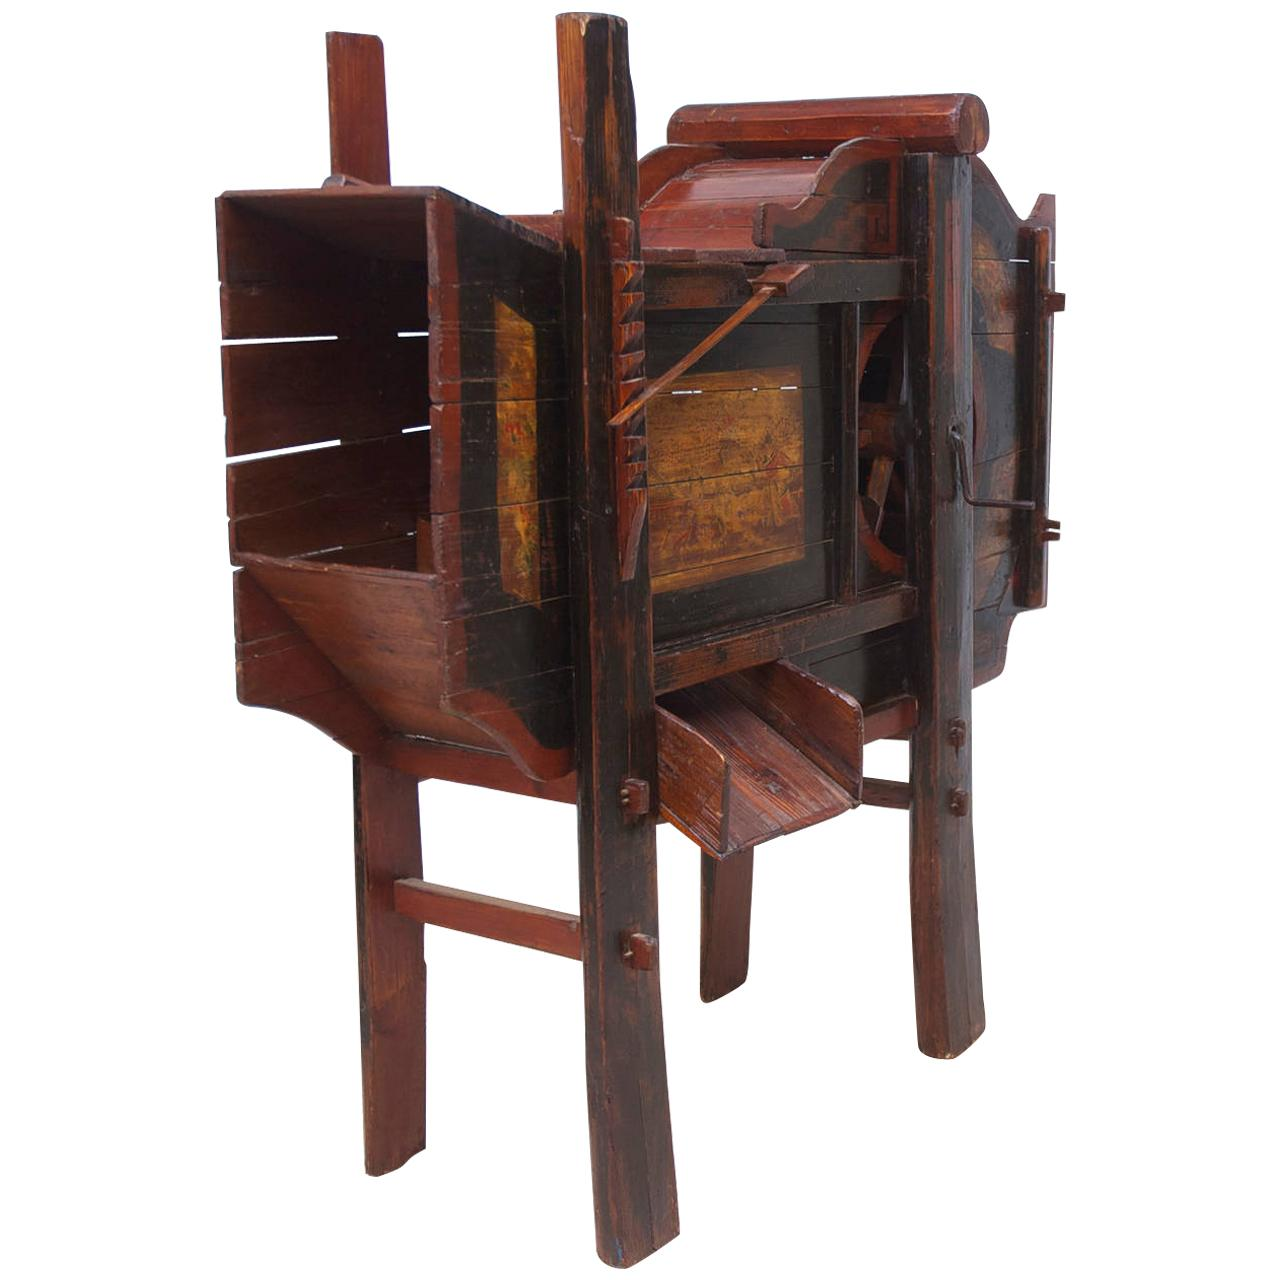 19th Century Wooden Chinese Rice Thresher with Painted Scenes